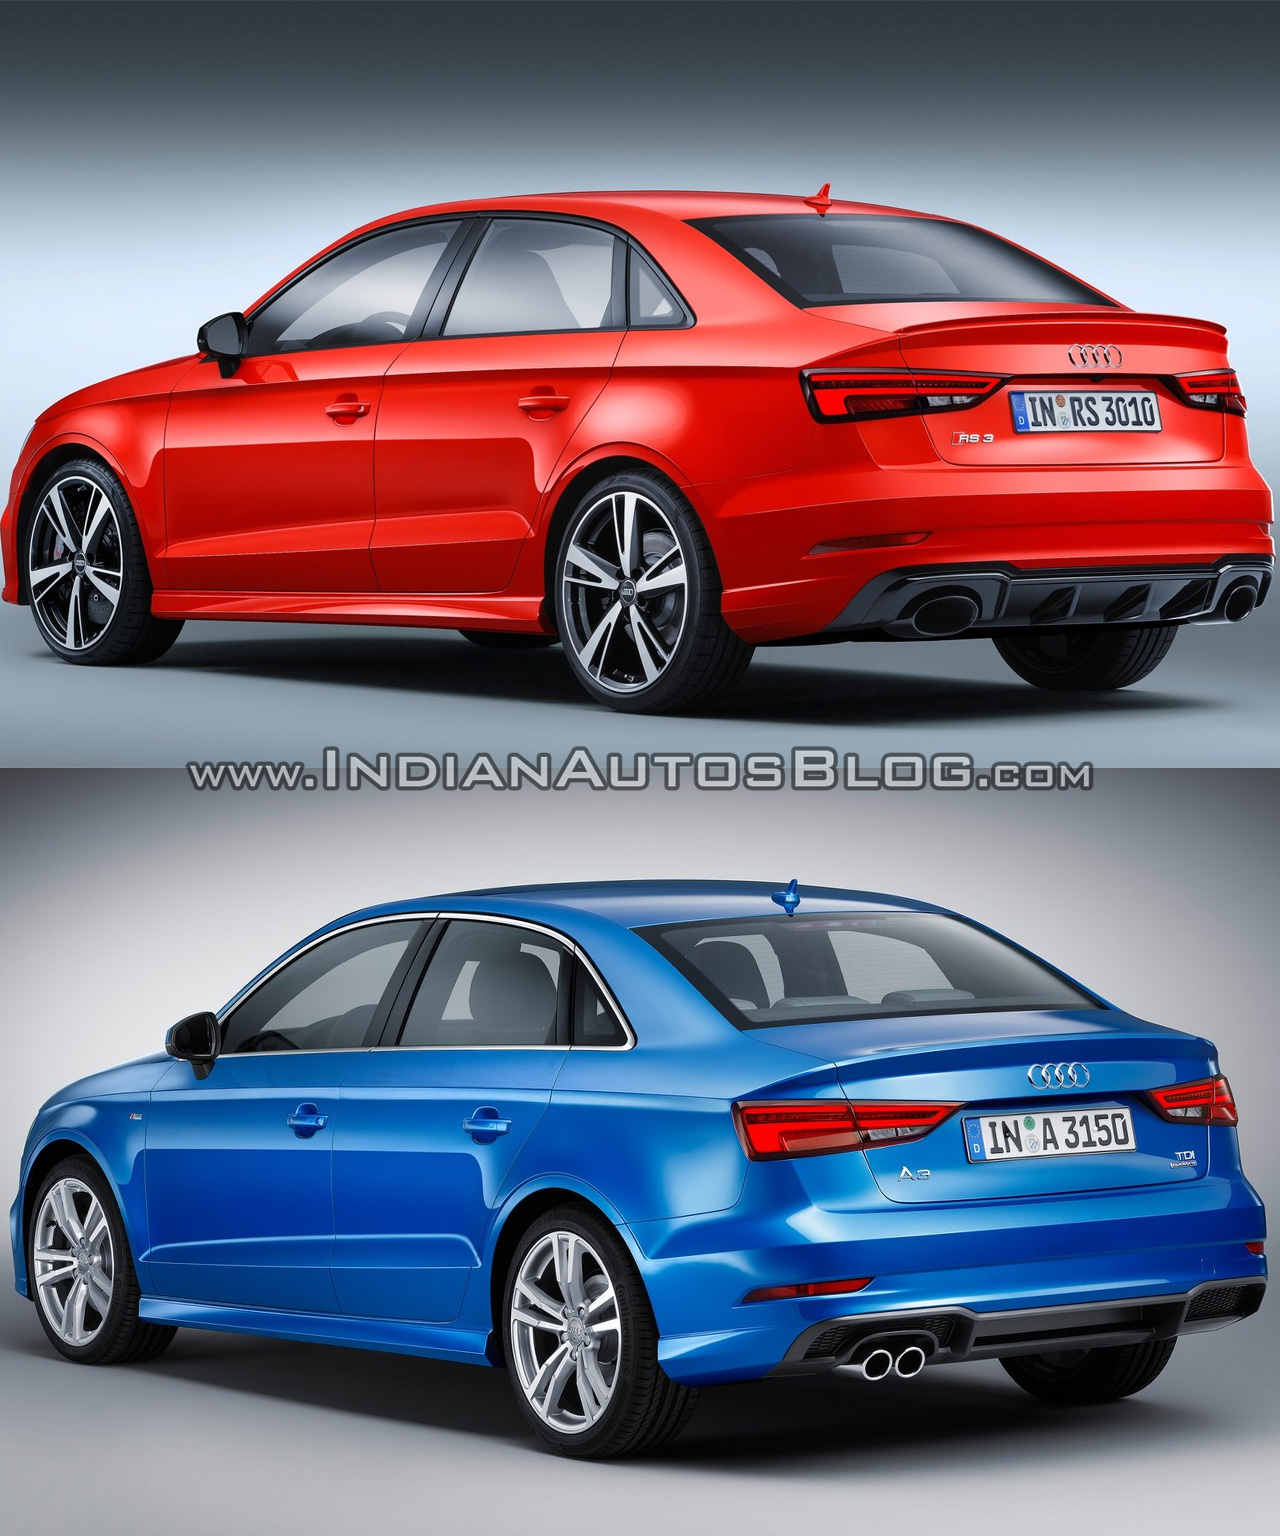 Audi Rs3 Sedan Vs Audi A3 Sedan In Images